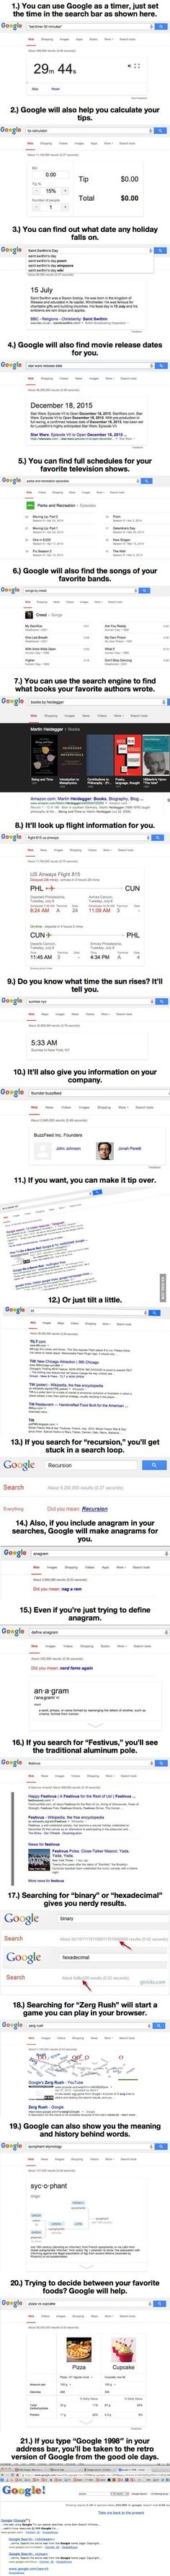 21 Google Hacks Will Blow Your Mind: http://scout.cheatsheet.me/21-google-hacks-will-blow-mind-14-made-day/